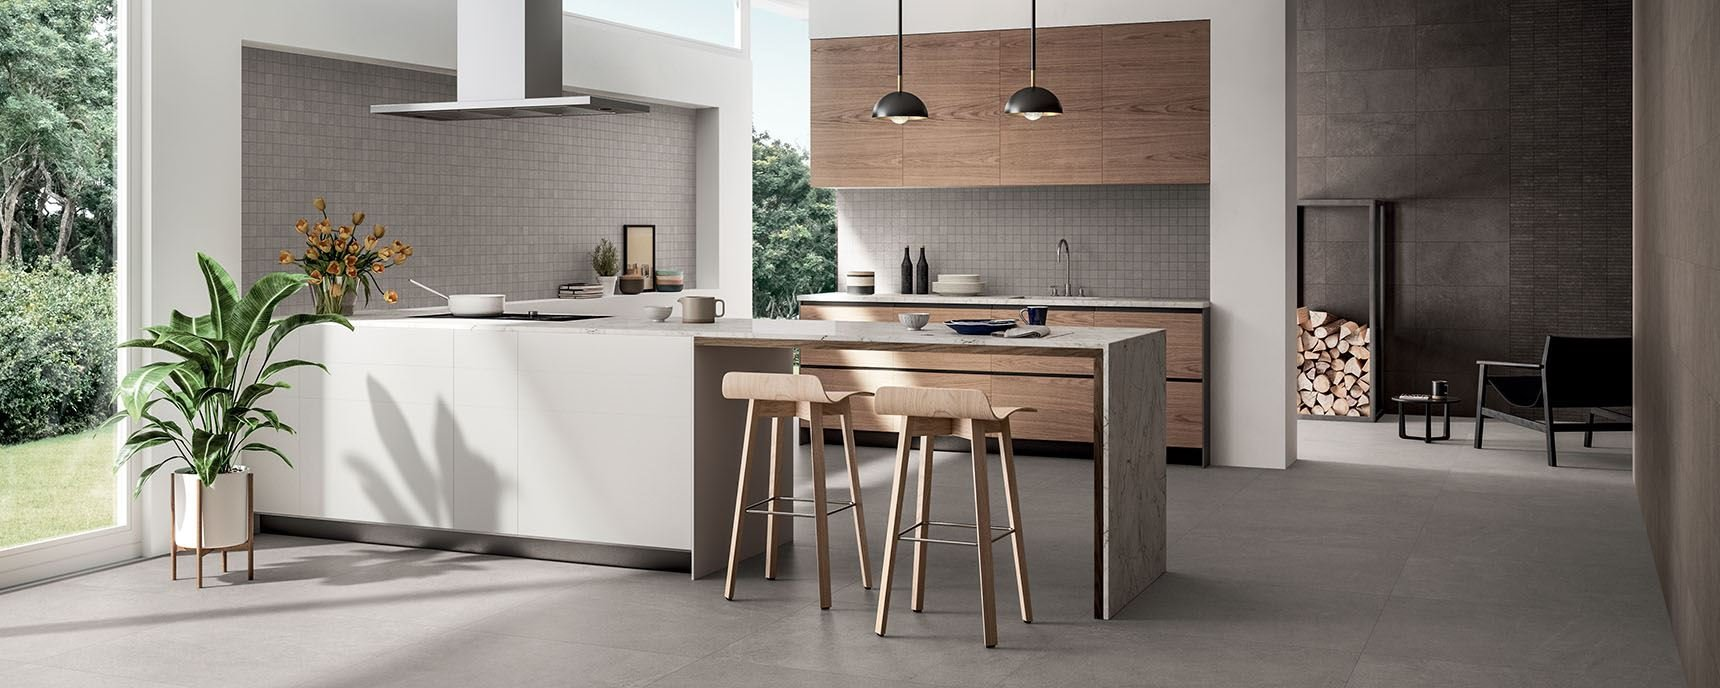 A Modern Kitchen What Are Its Characteristics